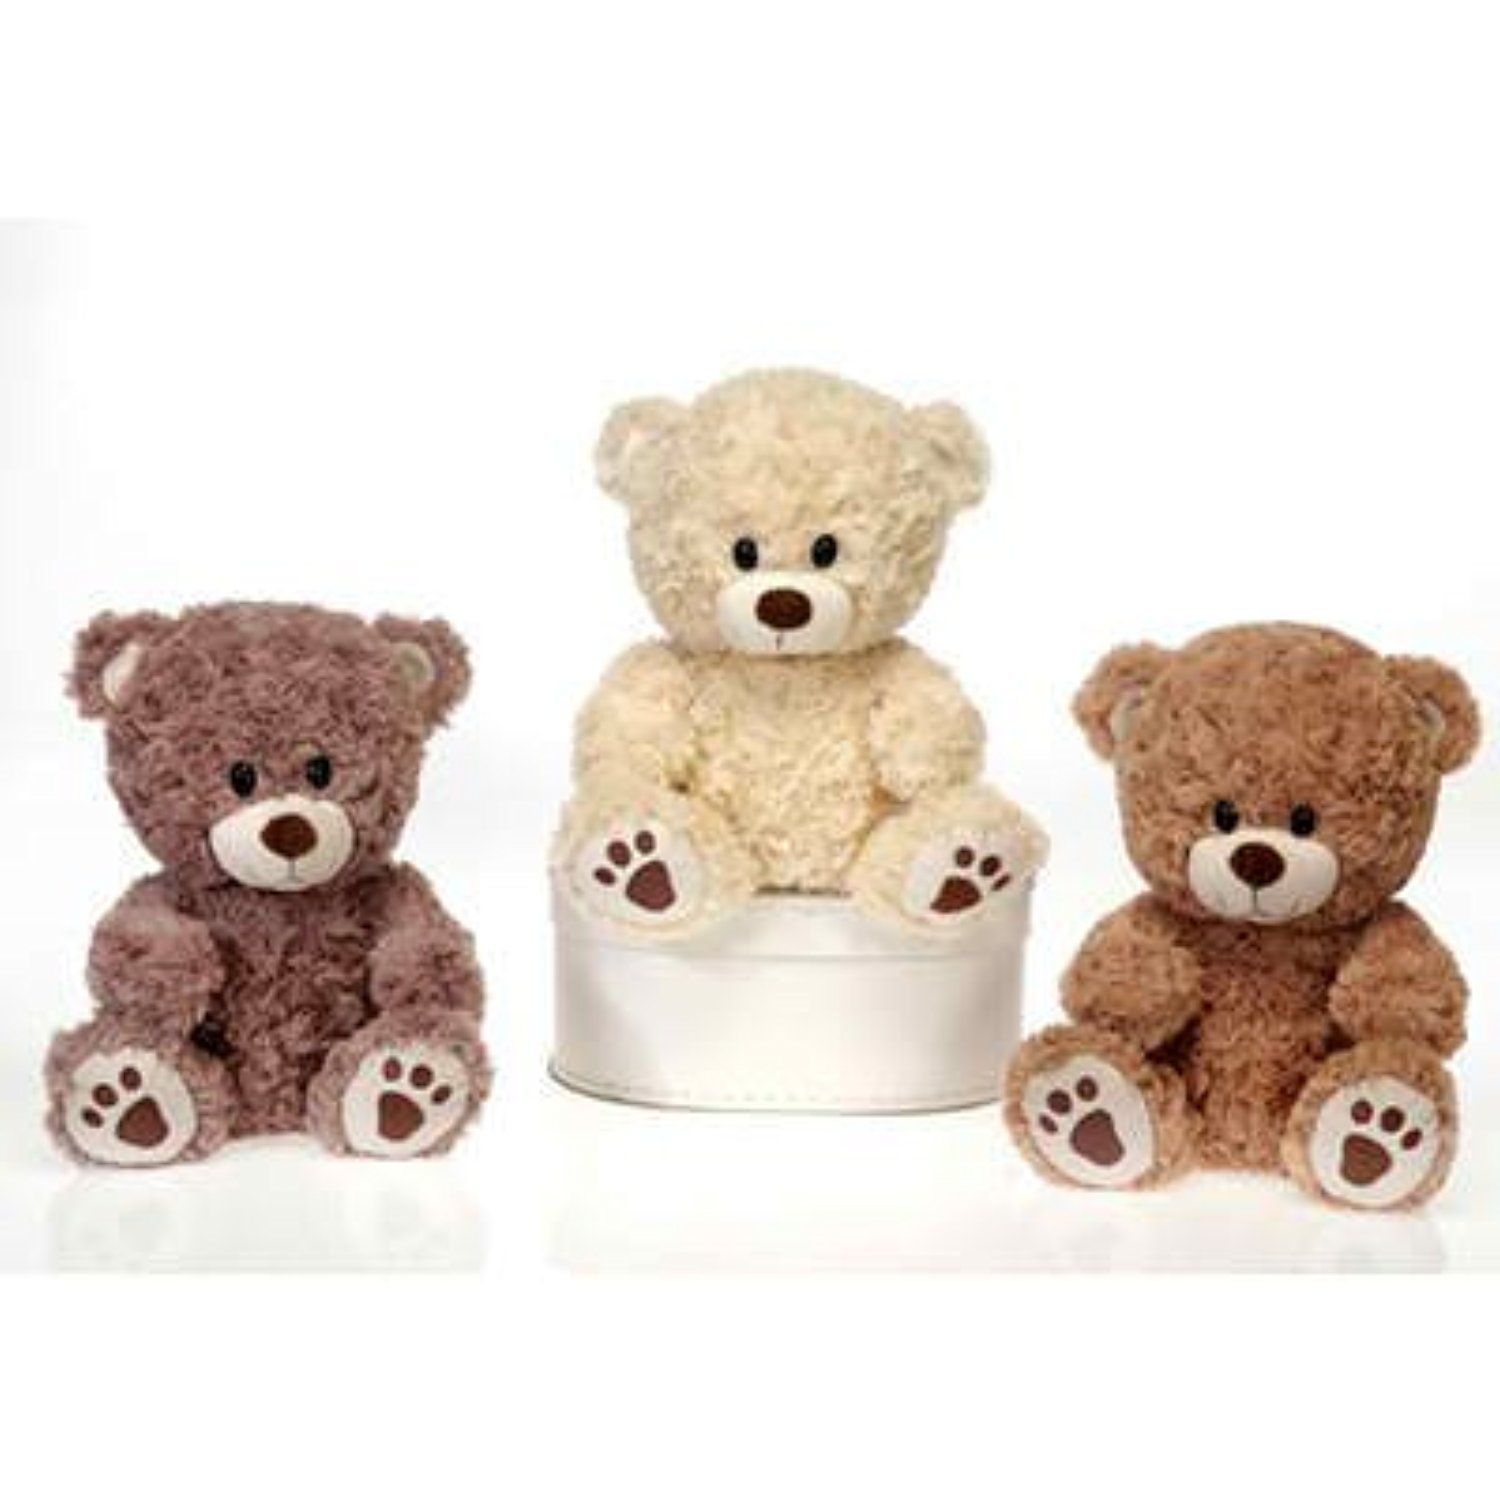 Pin on Stuffed Animals & Teddy Bears